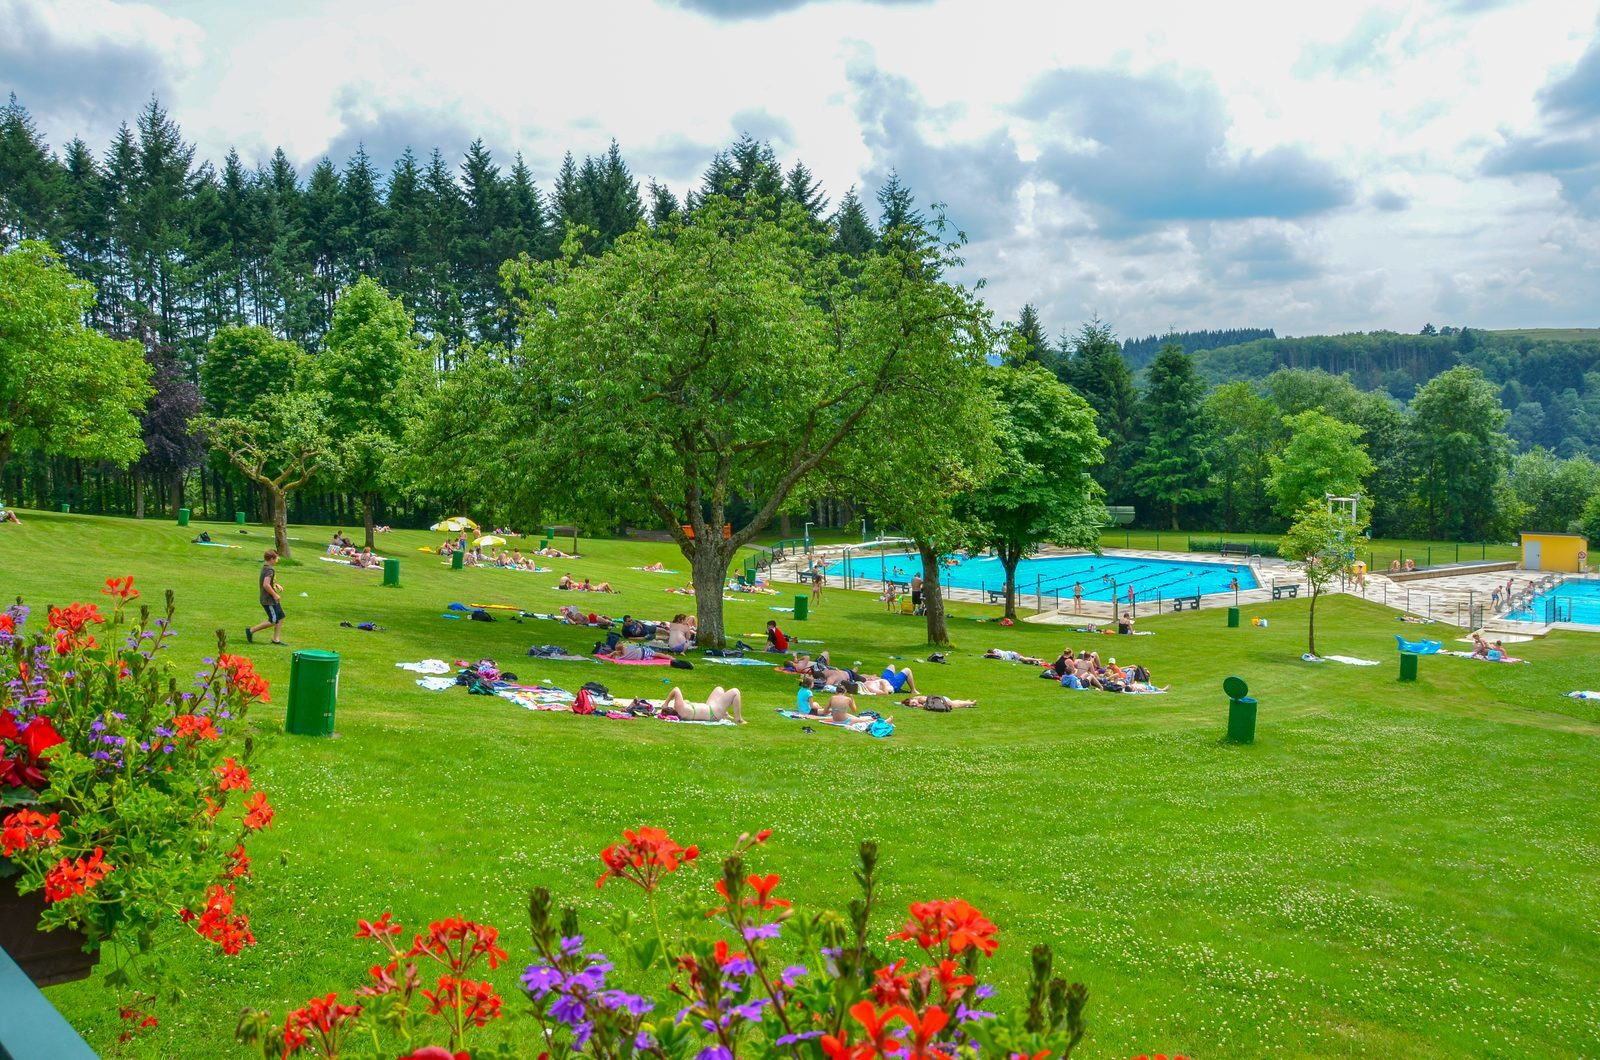 Vianden swimming pool easily accessible from the Walsdorf holiday park